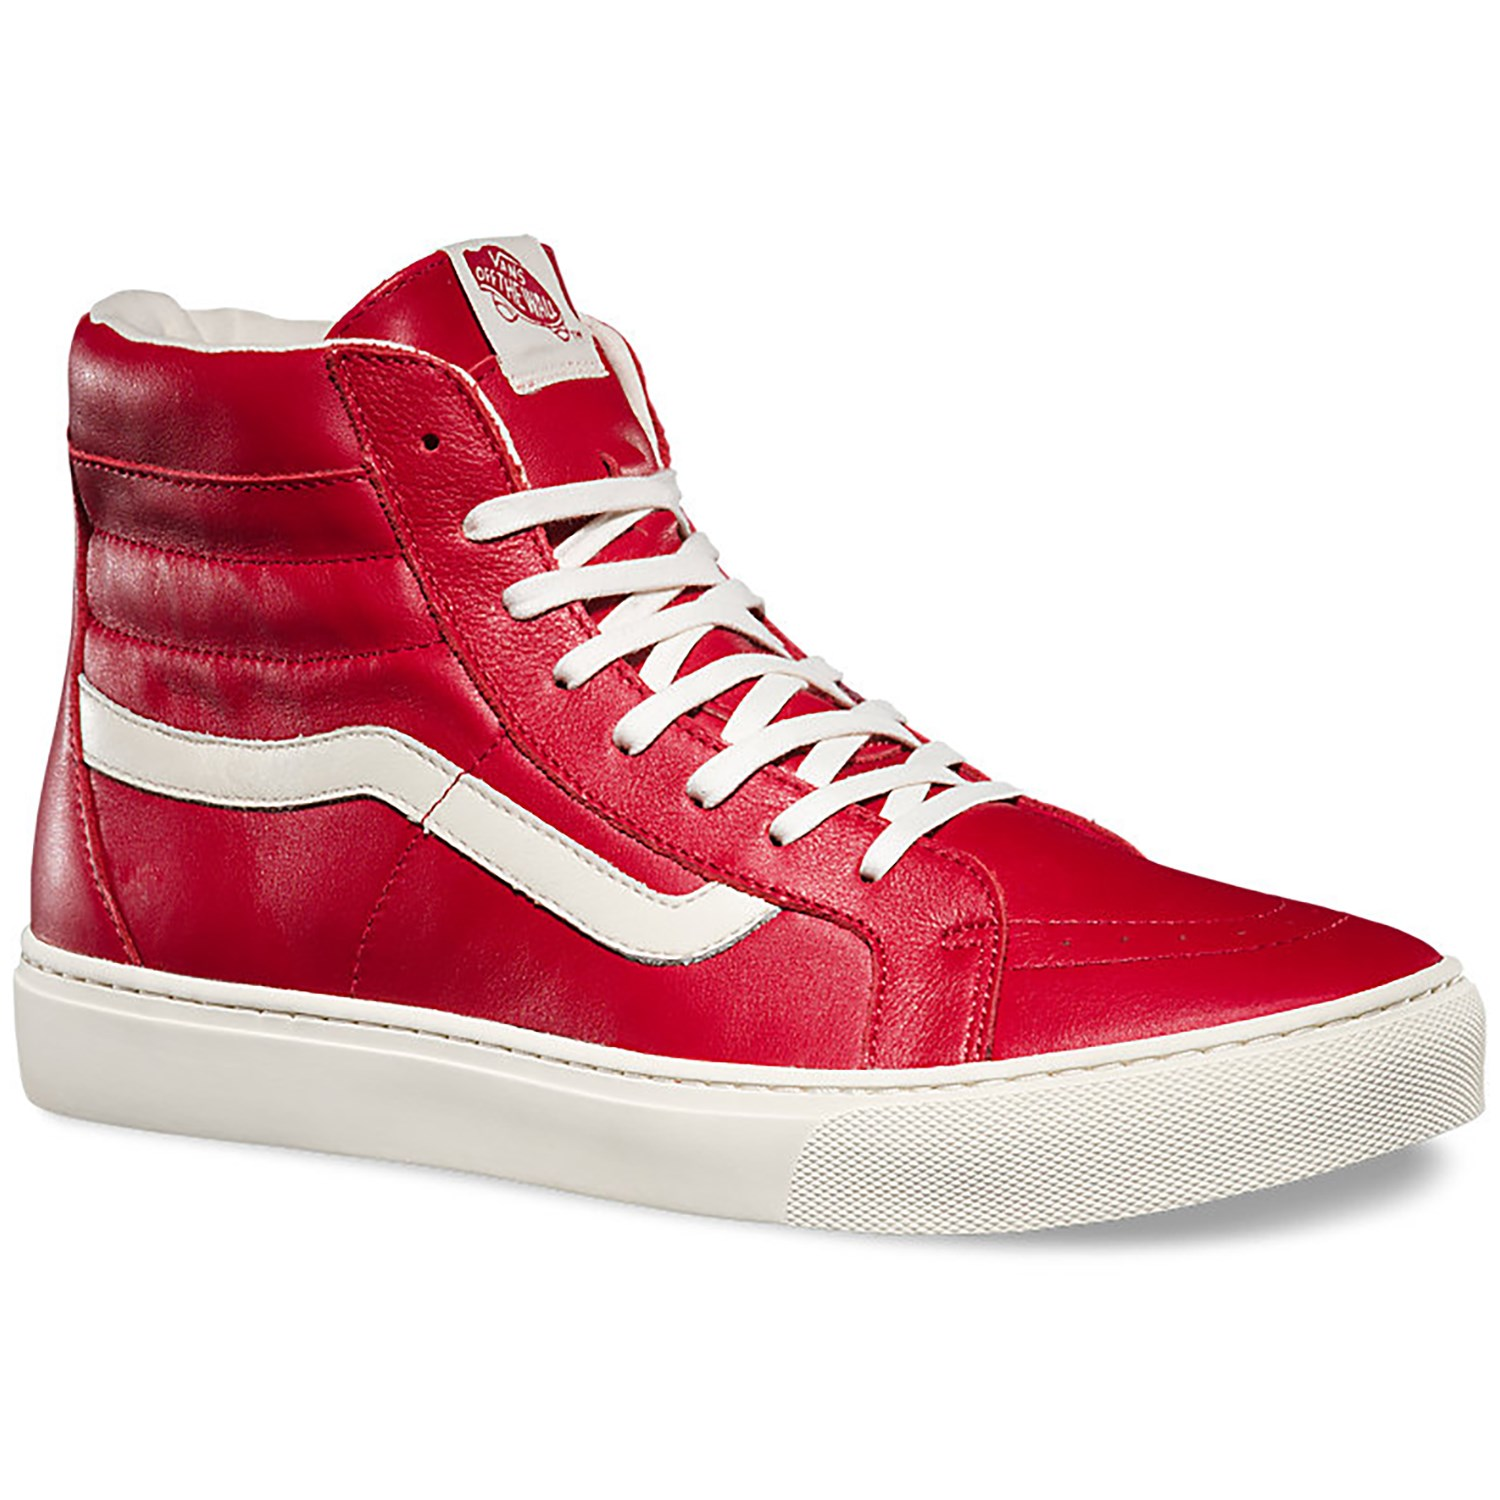 4ef2cfe8cab Vans Sk8-Hi Cup Leather CA Shoes - Women s